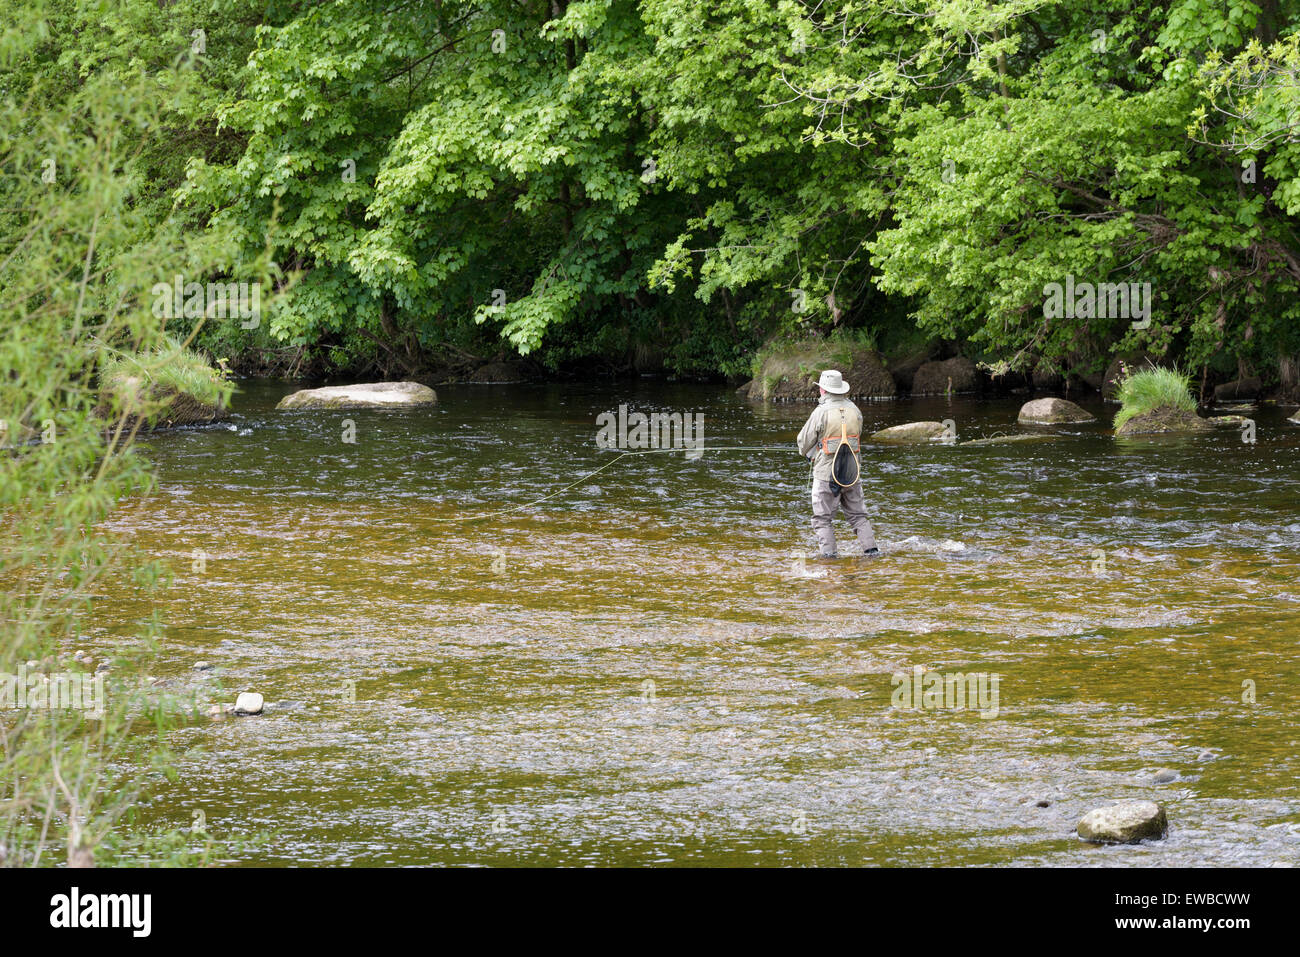 Elderly man fly fishing in the River Wharf, near Bolton Abbey, North Yorkshire, England. - Stock Image